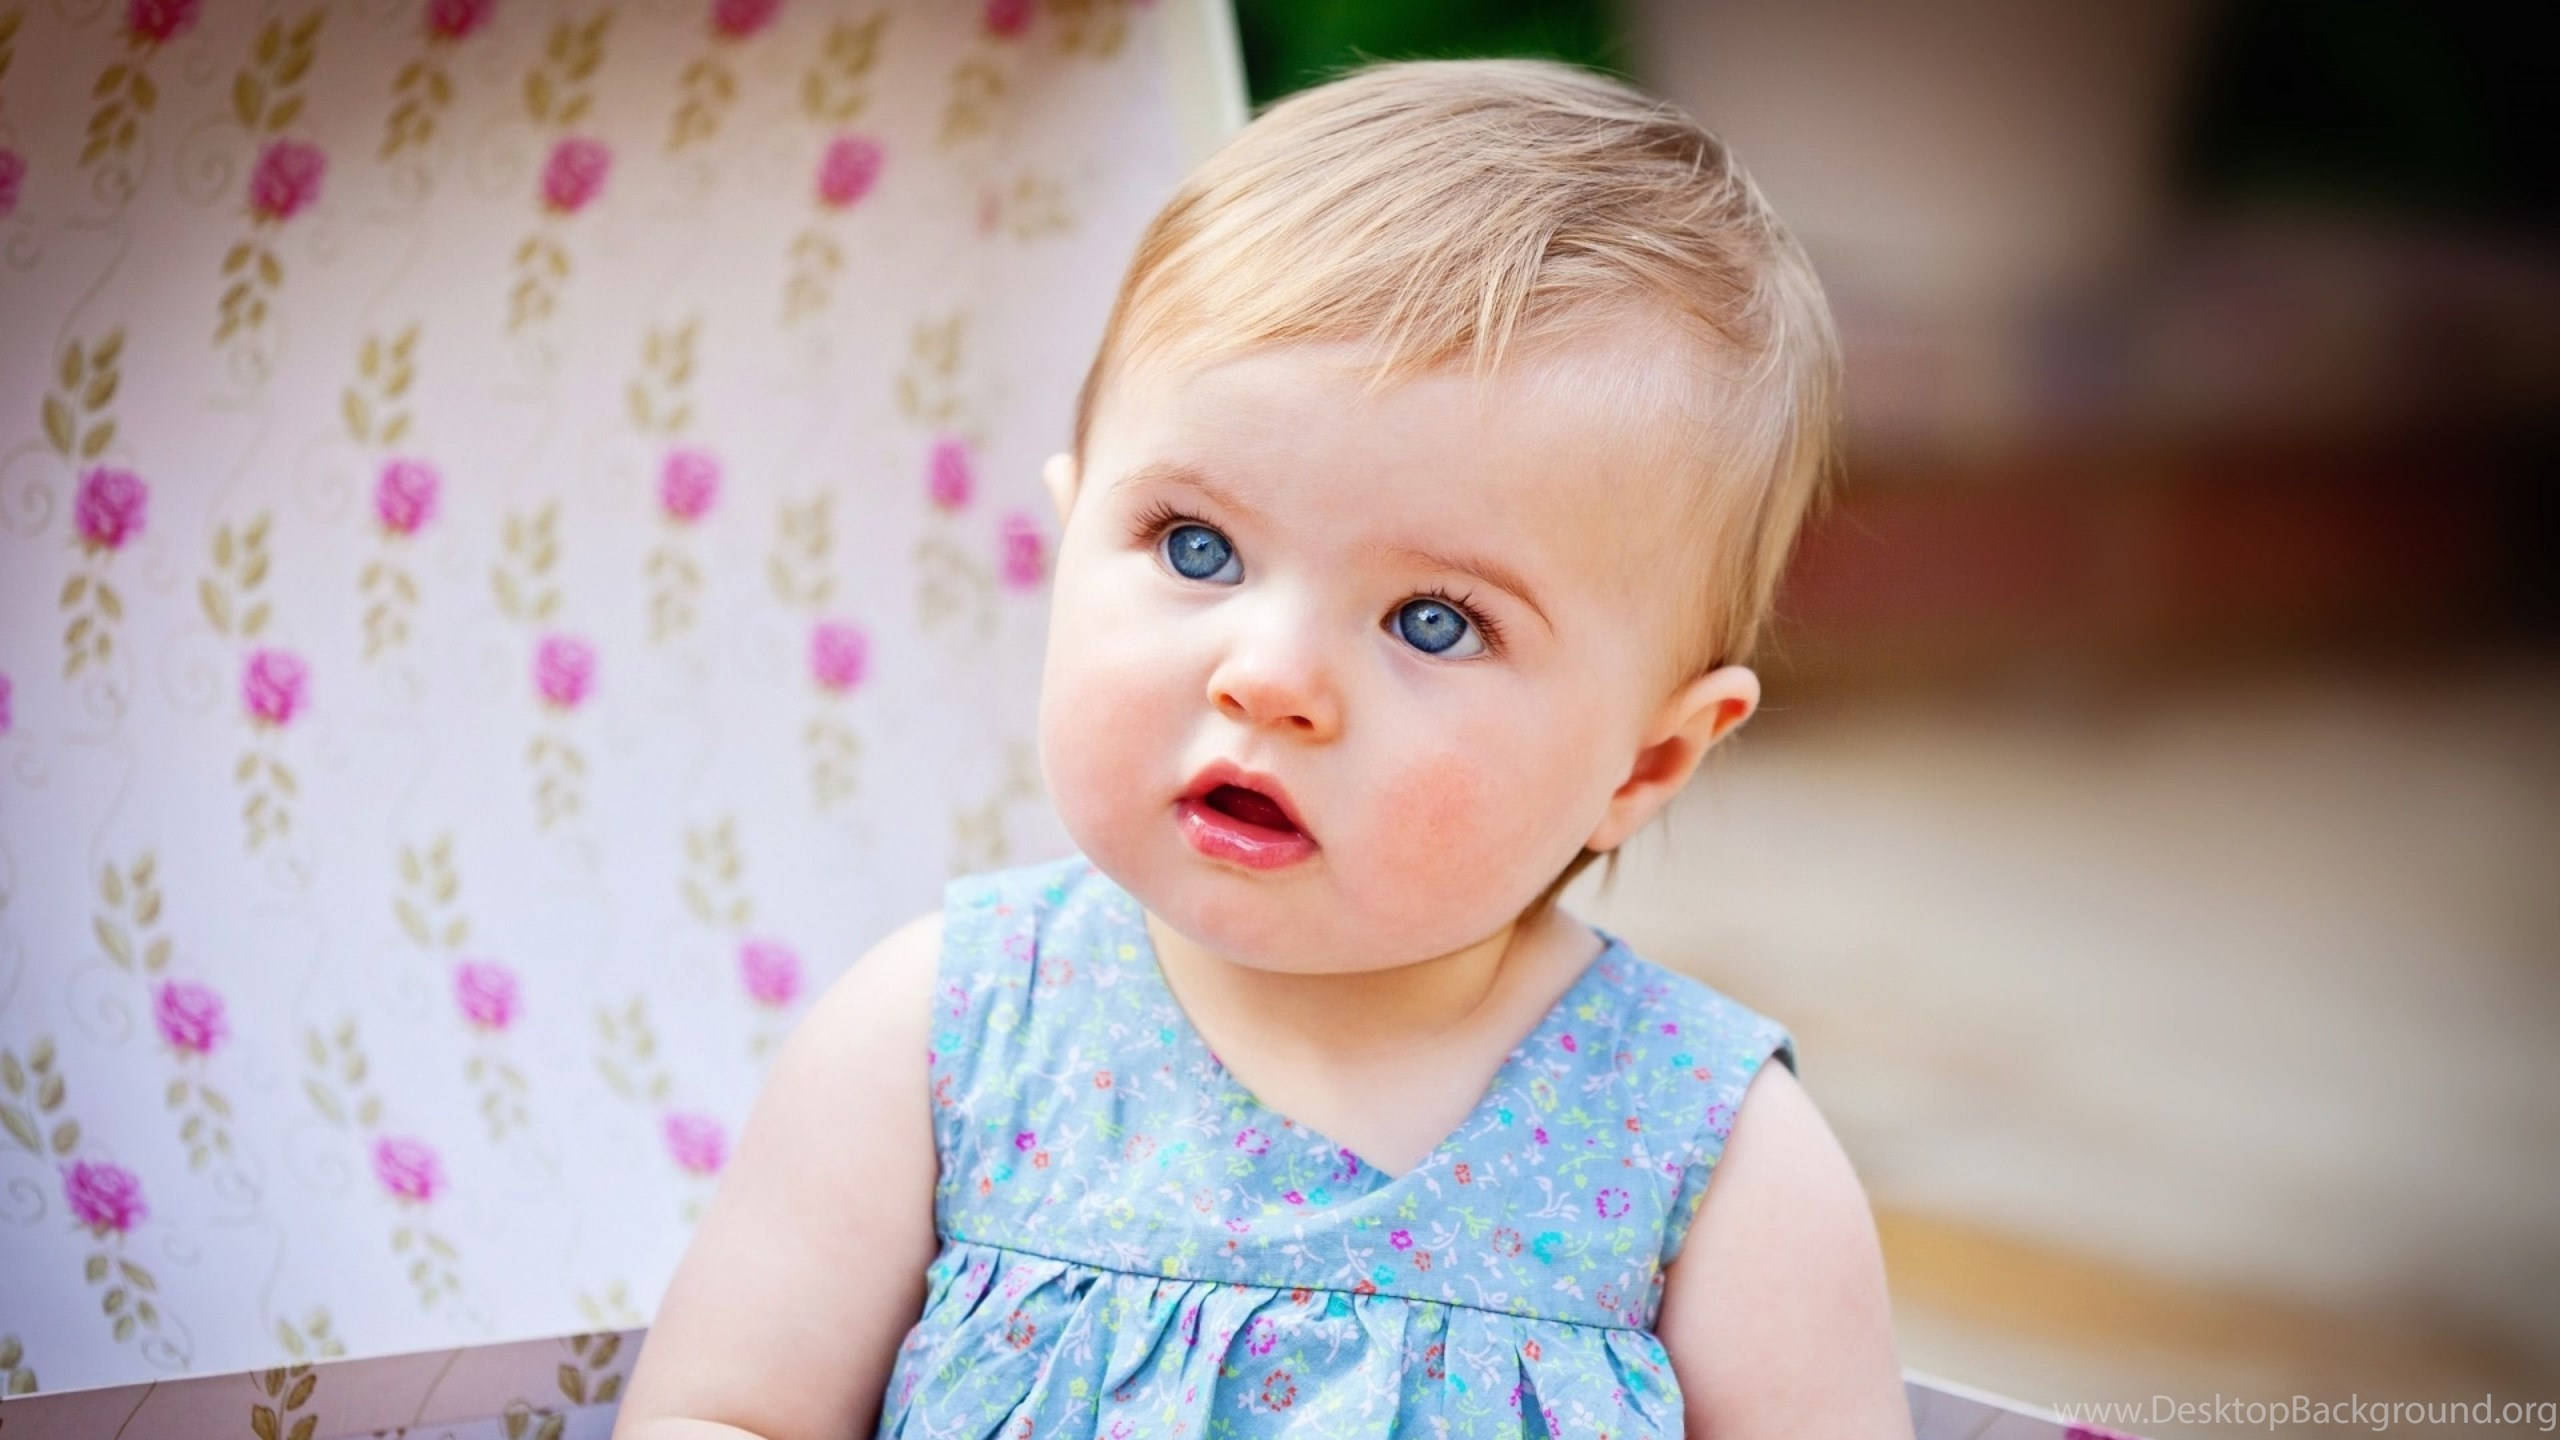 Cute Baby Girls Best Hd Wallpaper Jpg Desktop Background